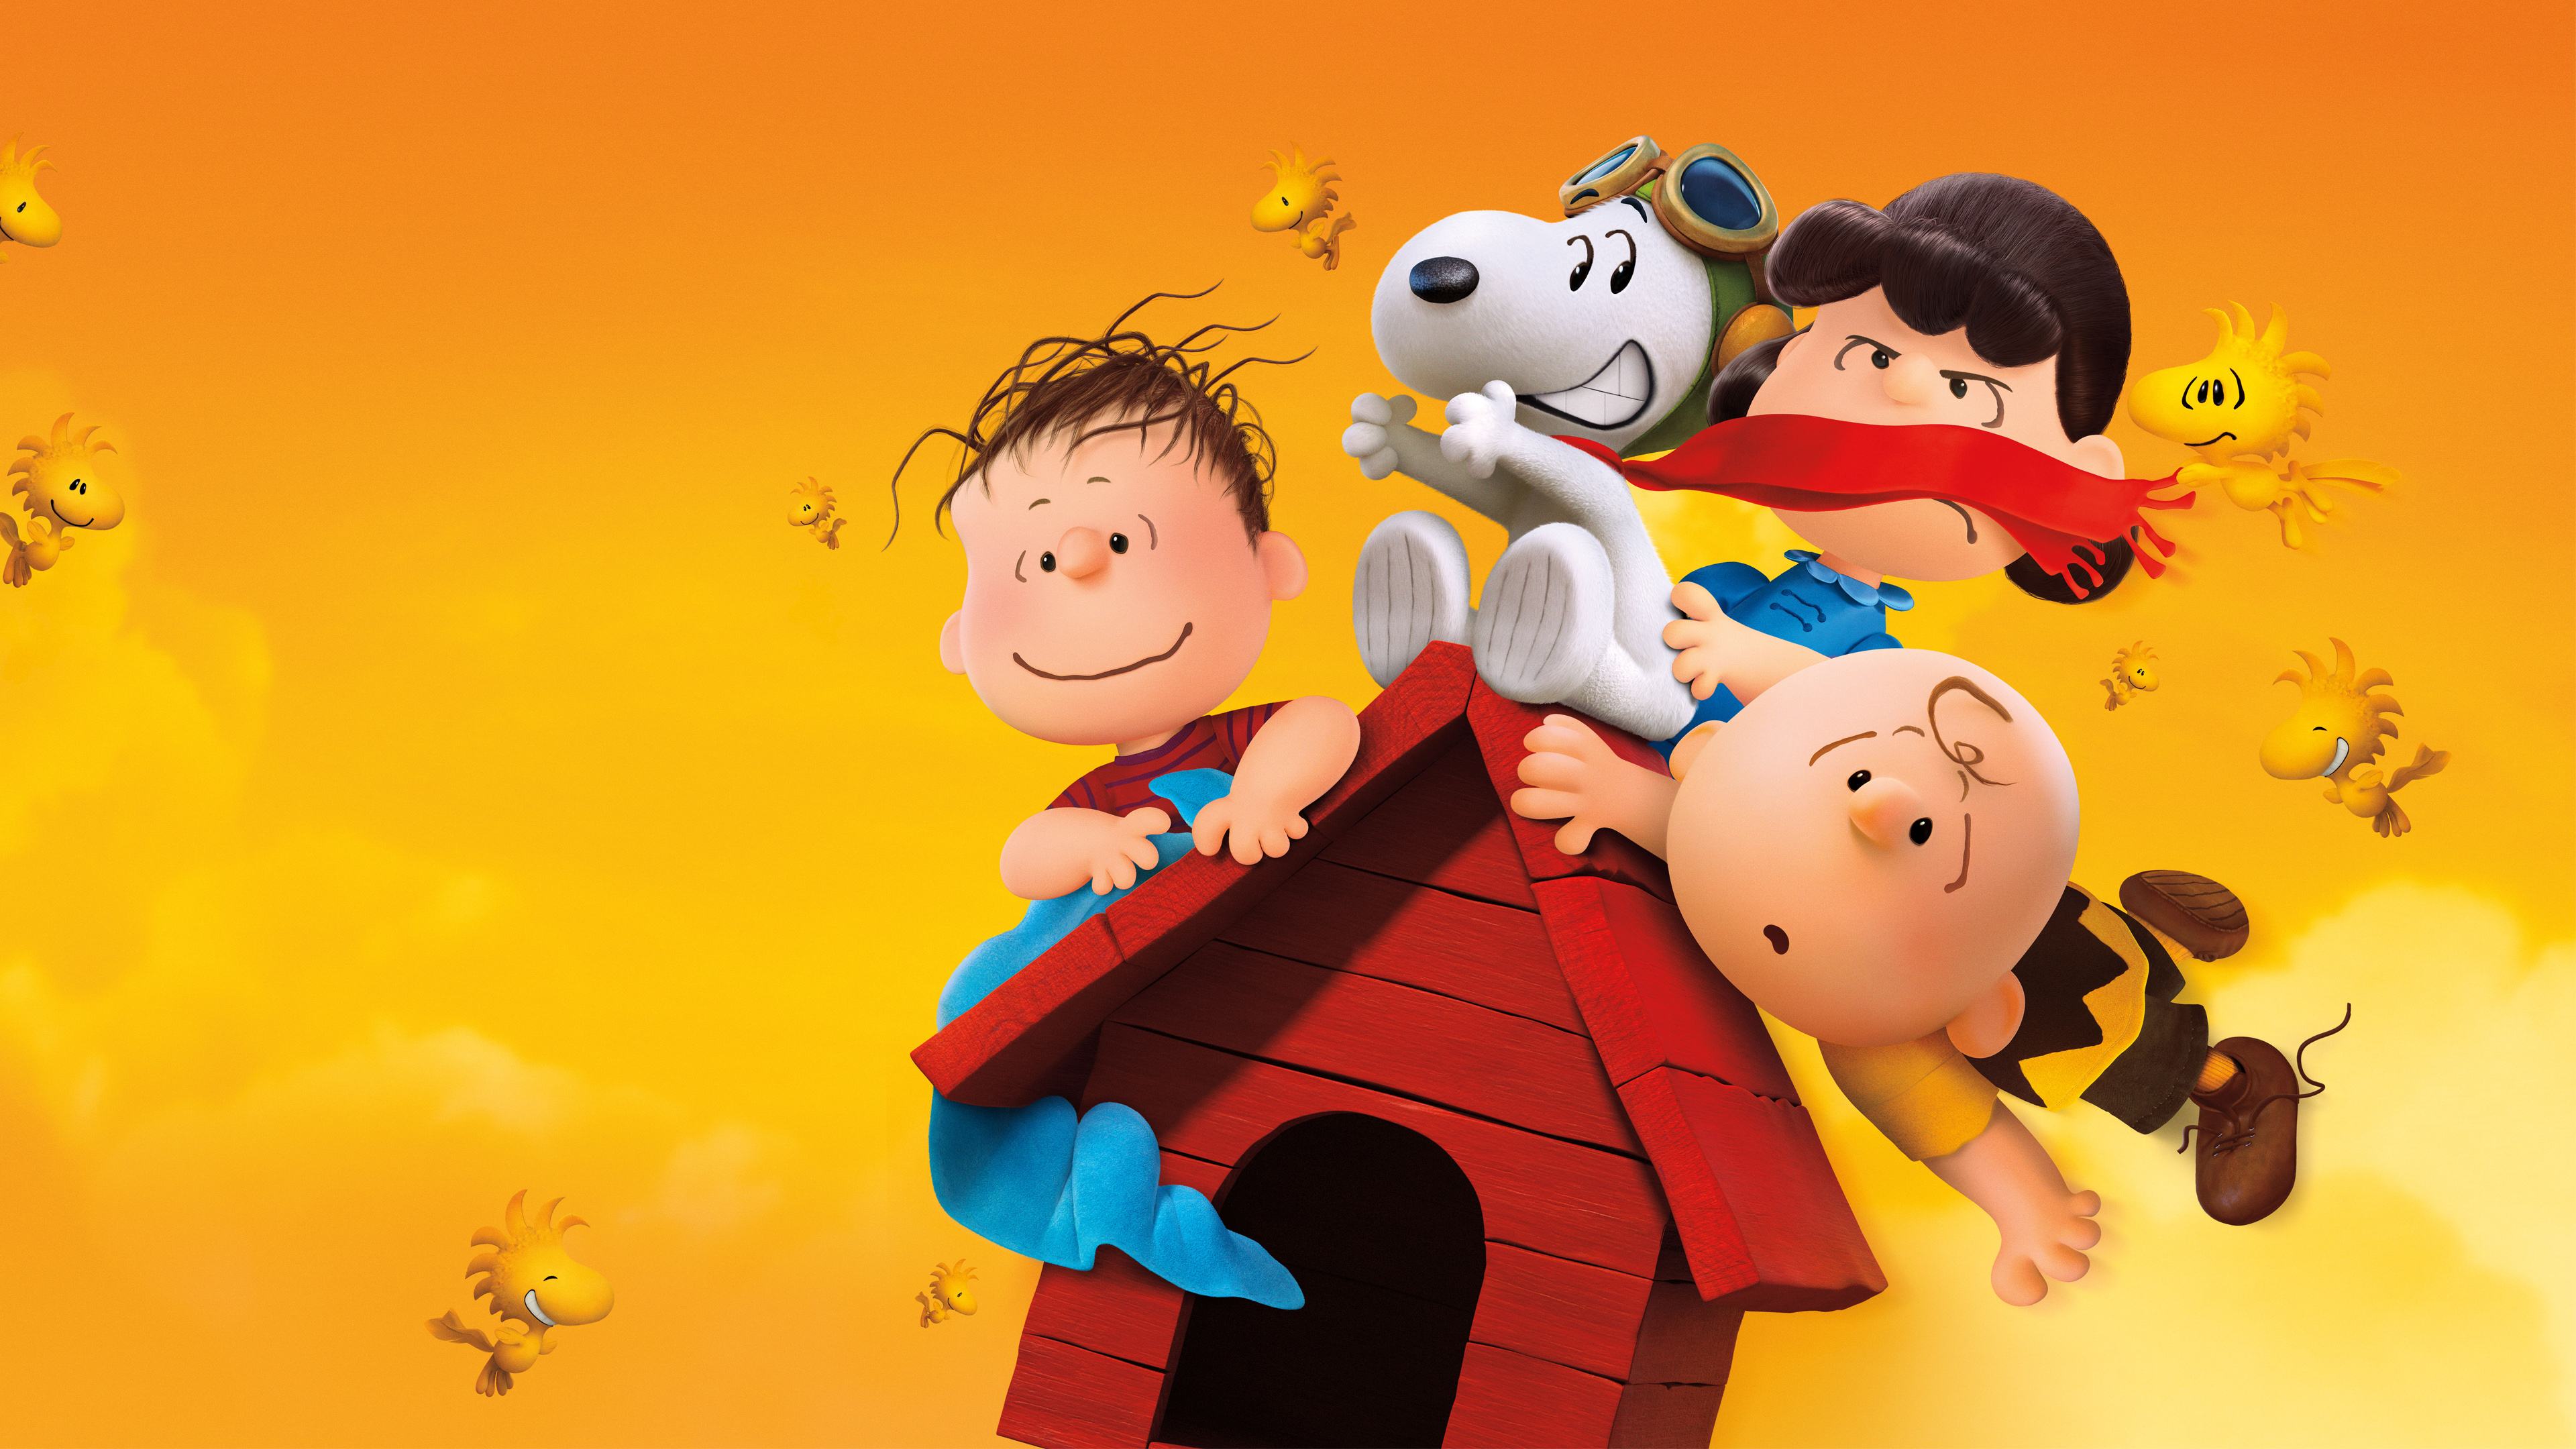 3840x2160 The Peanuts 4k Hd 4k Wallpapers Images Backgrounds